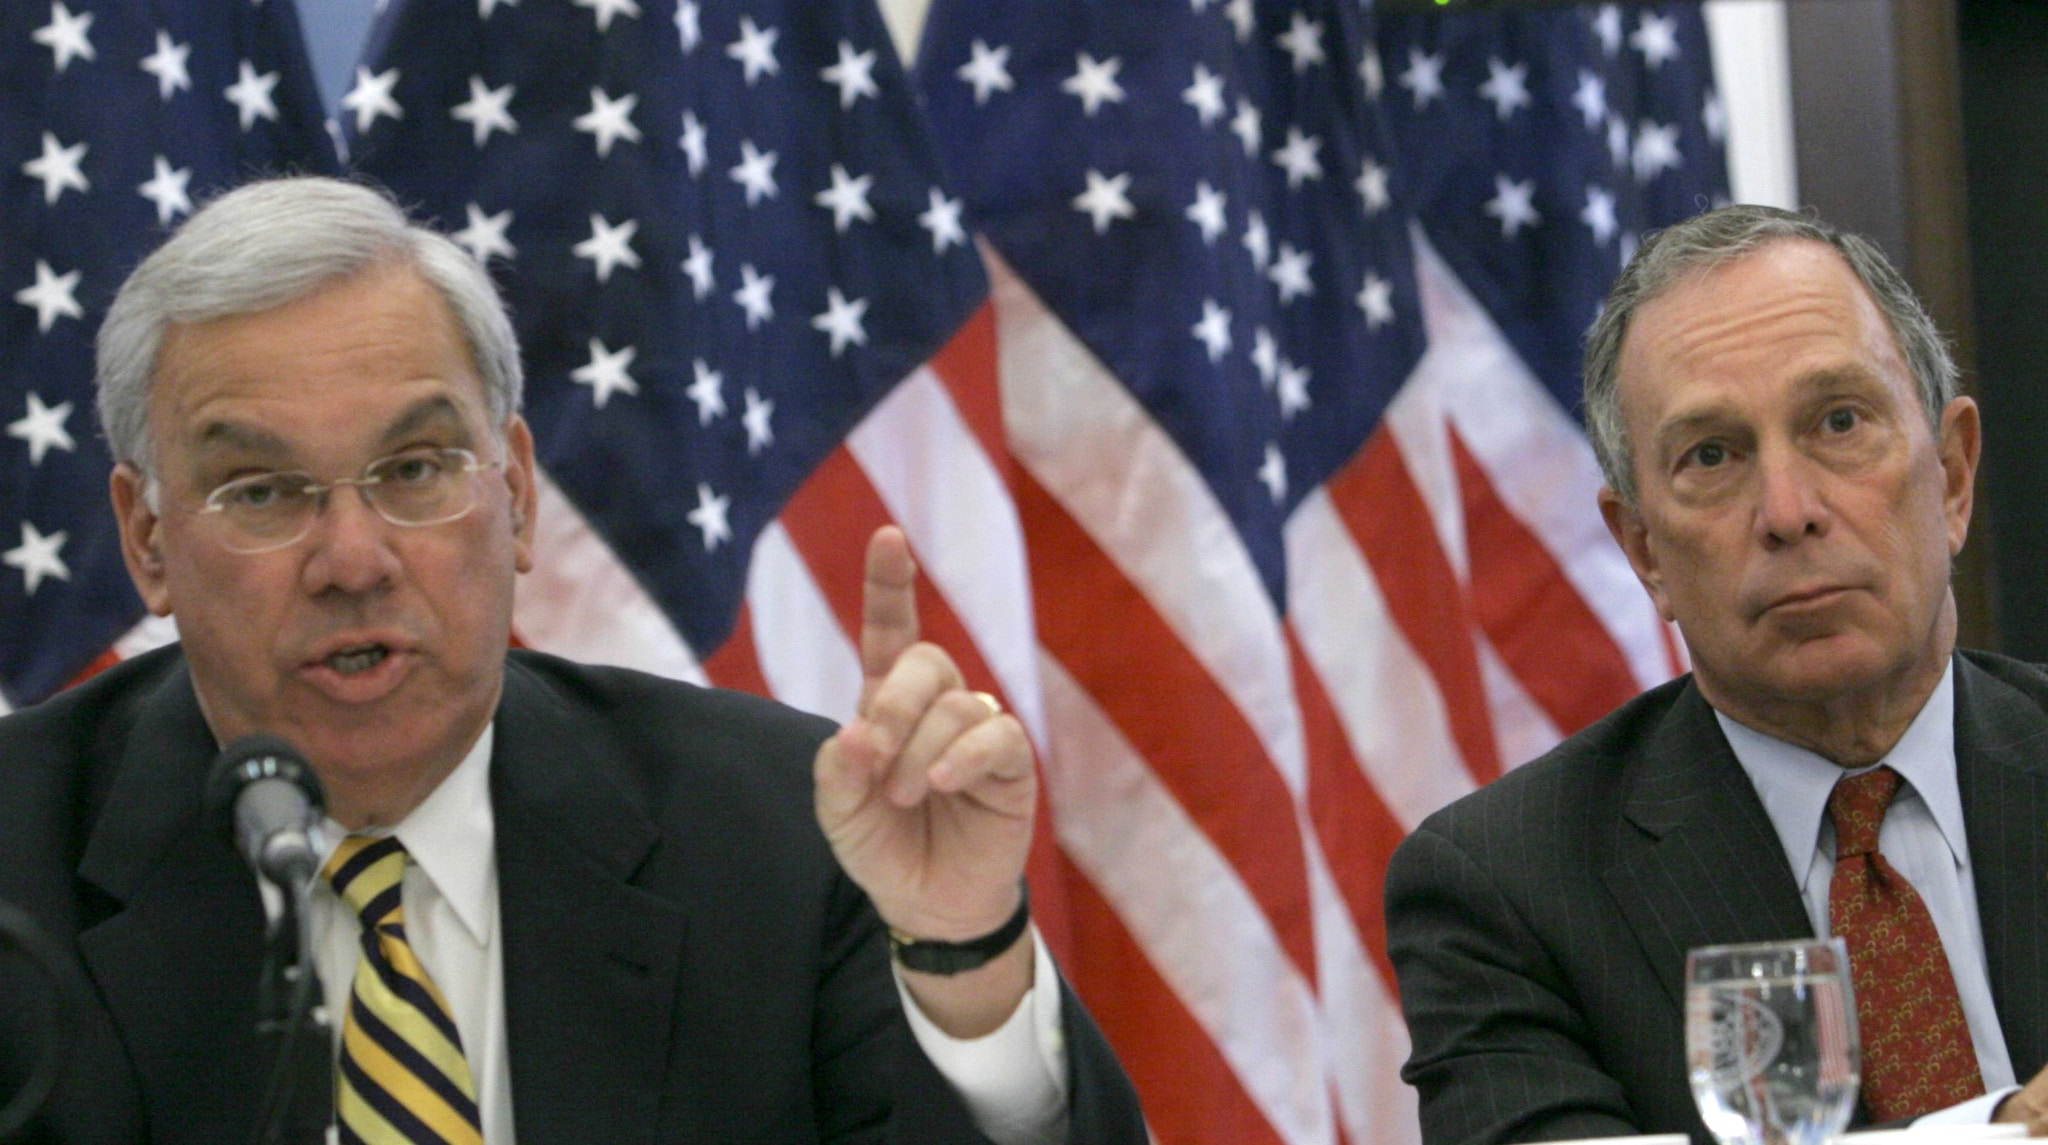 Then-New York Mayor Michael Bloomberg, right, listens as then-Boston Mayor Thomas Menino makes opening remarks at the first National Summit on Illegal Guns at Gracie Mansion in New York, Tuesday April 25, 2006.  (Photo: AP /Bebeto Matthews)